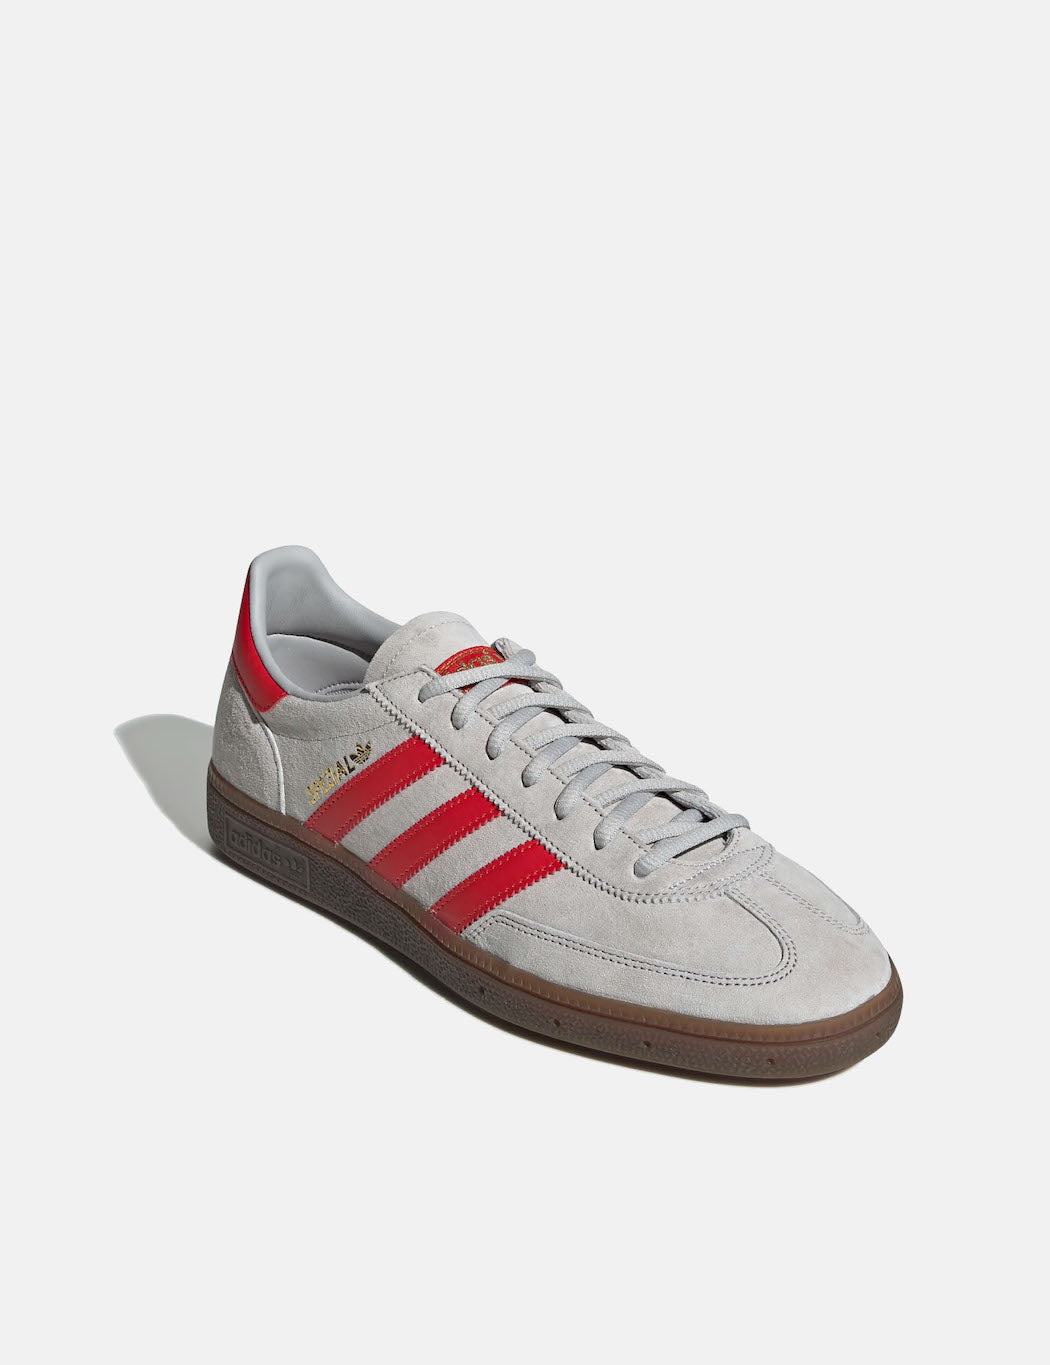 adidas Handball Spezial Shoes - Grey Two/Hi-Res Red/Gold Metallic